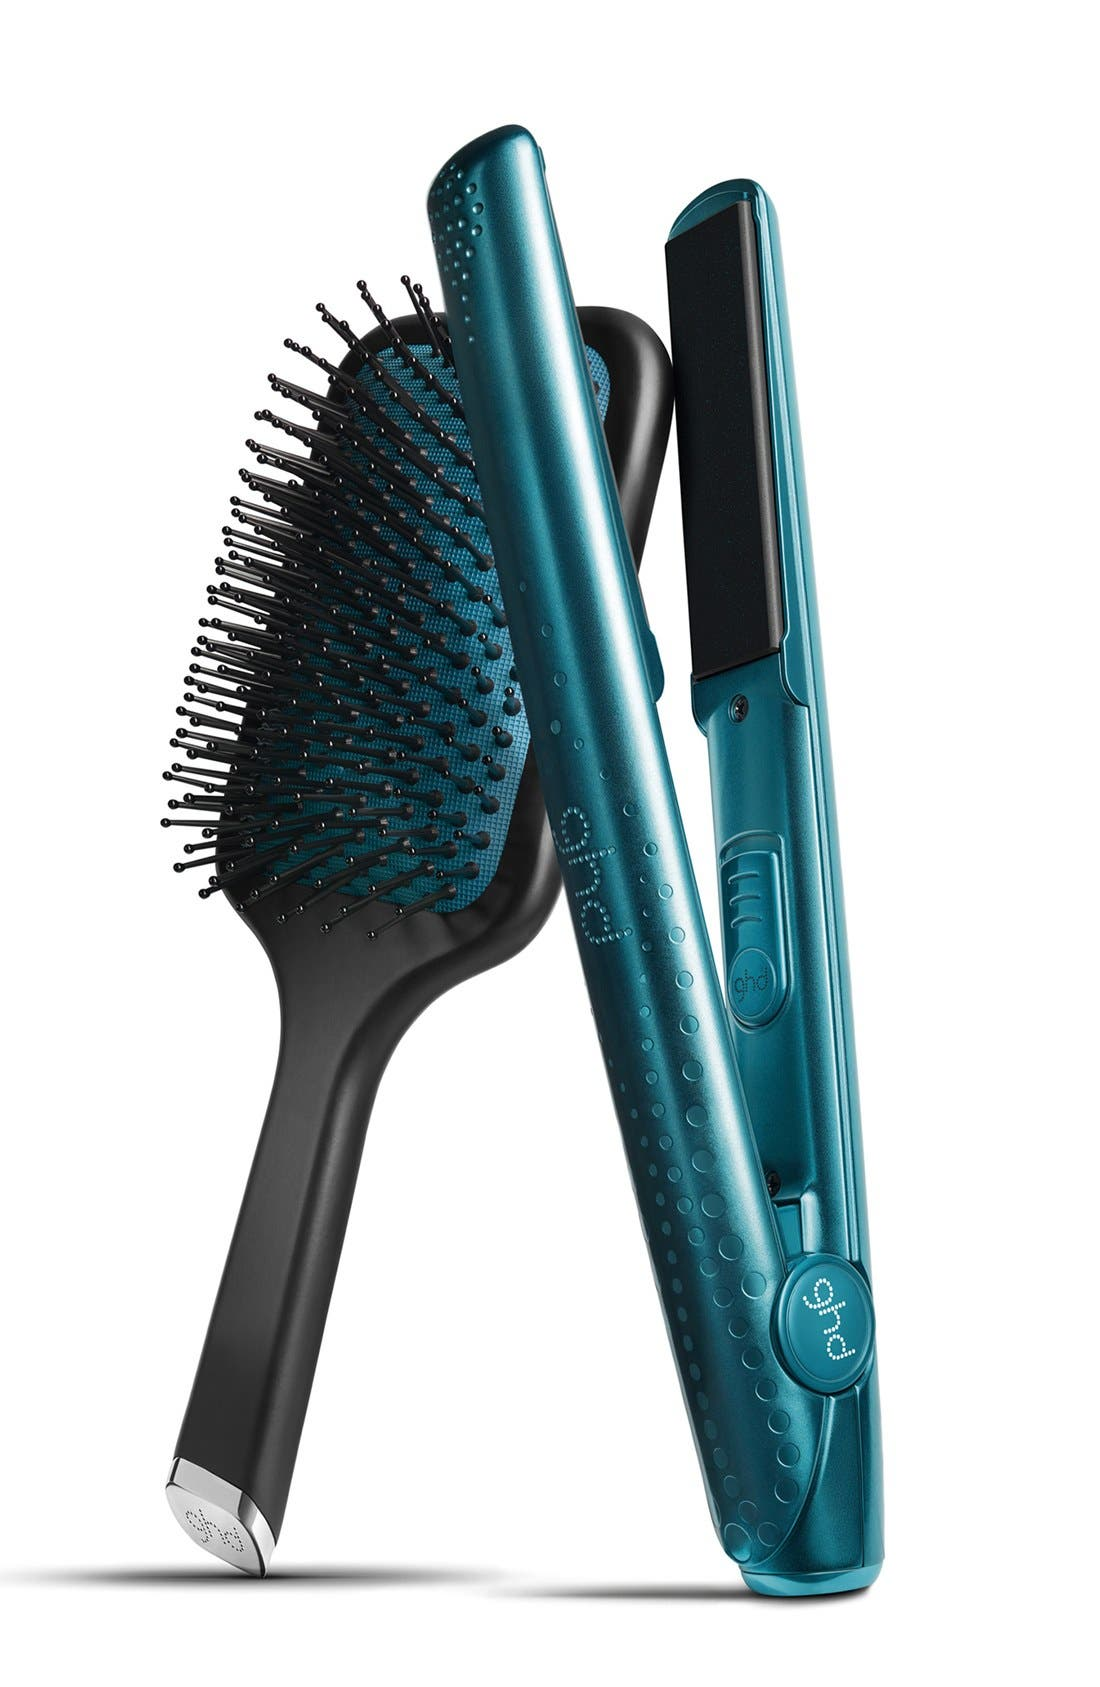 Alternate Image 1 Selected - ghd 'Jewel Collection - Sapphire' Styler & Hairbrush (Limited Edition) ($290 Value)